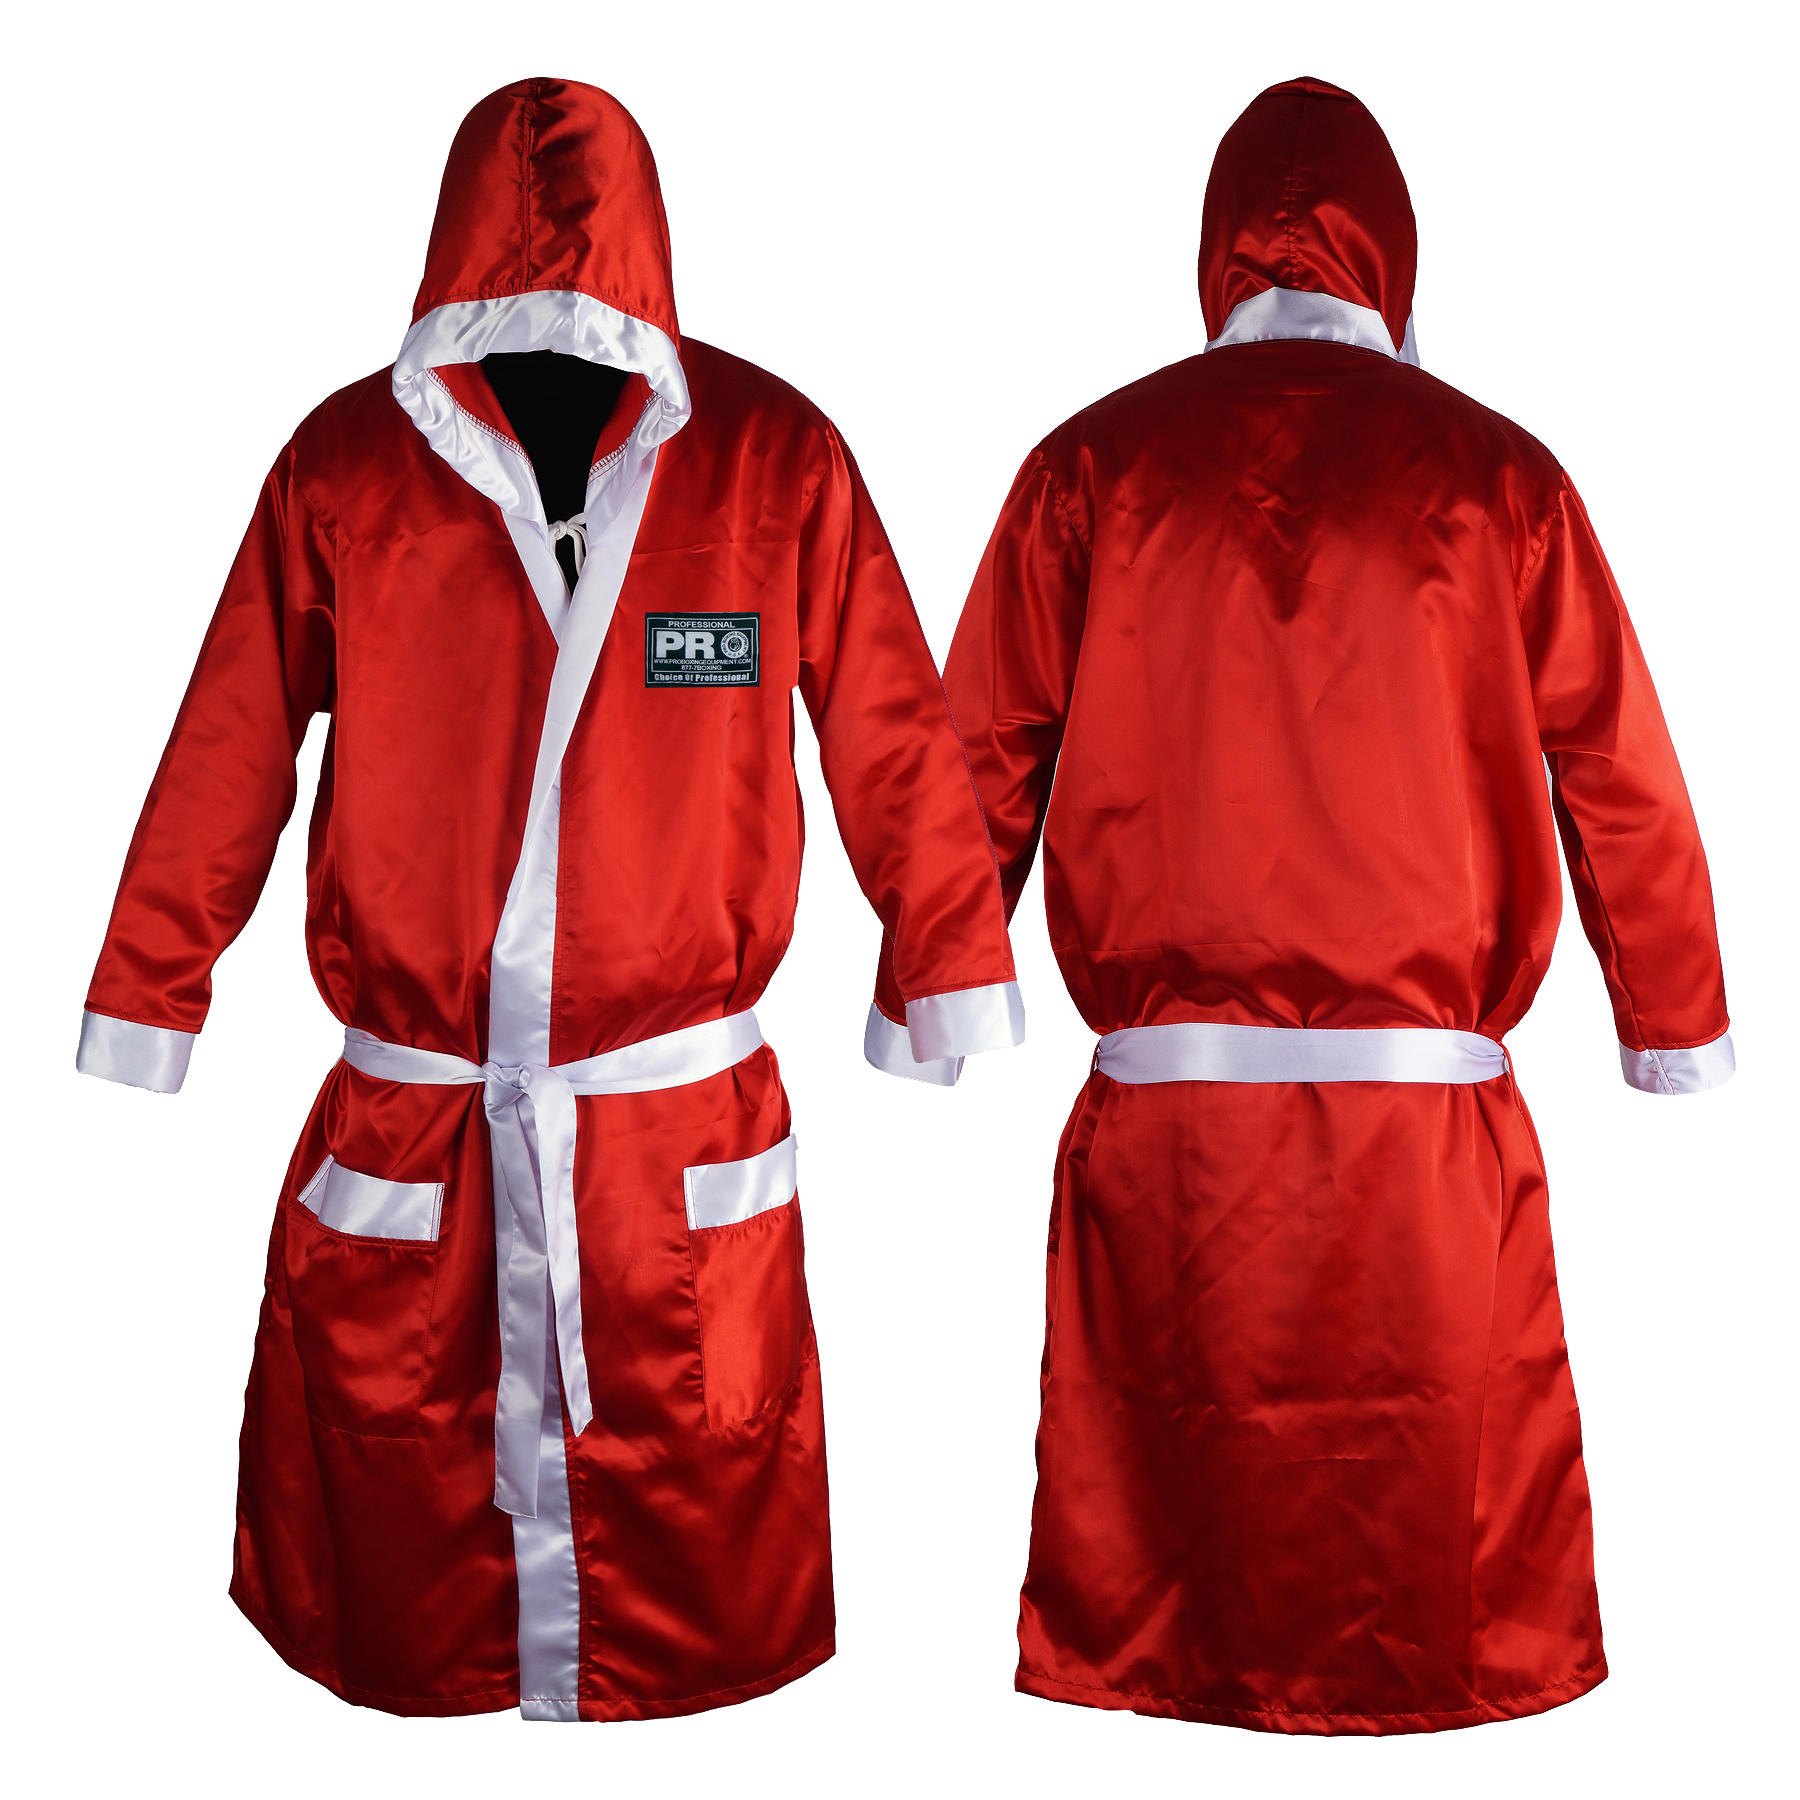 PRO Boxing Robe with Hood in Satin Polyester